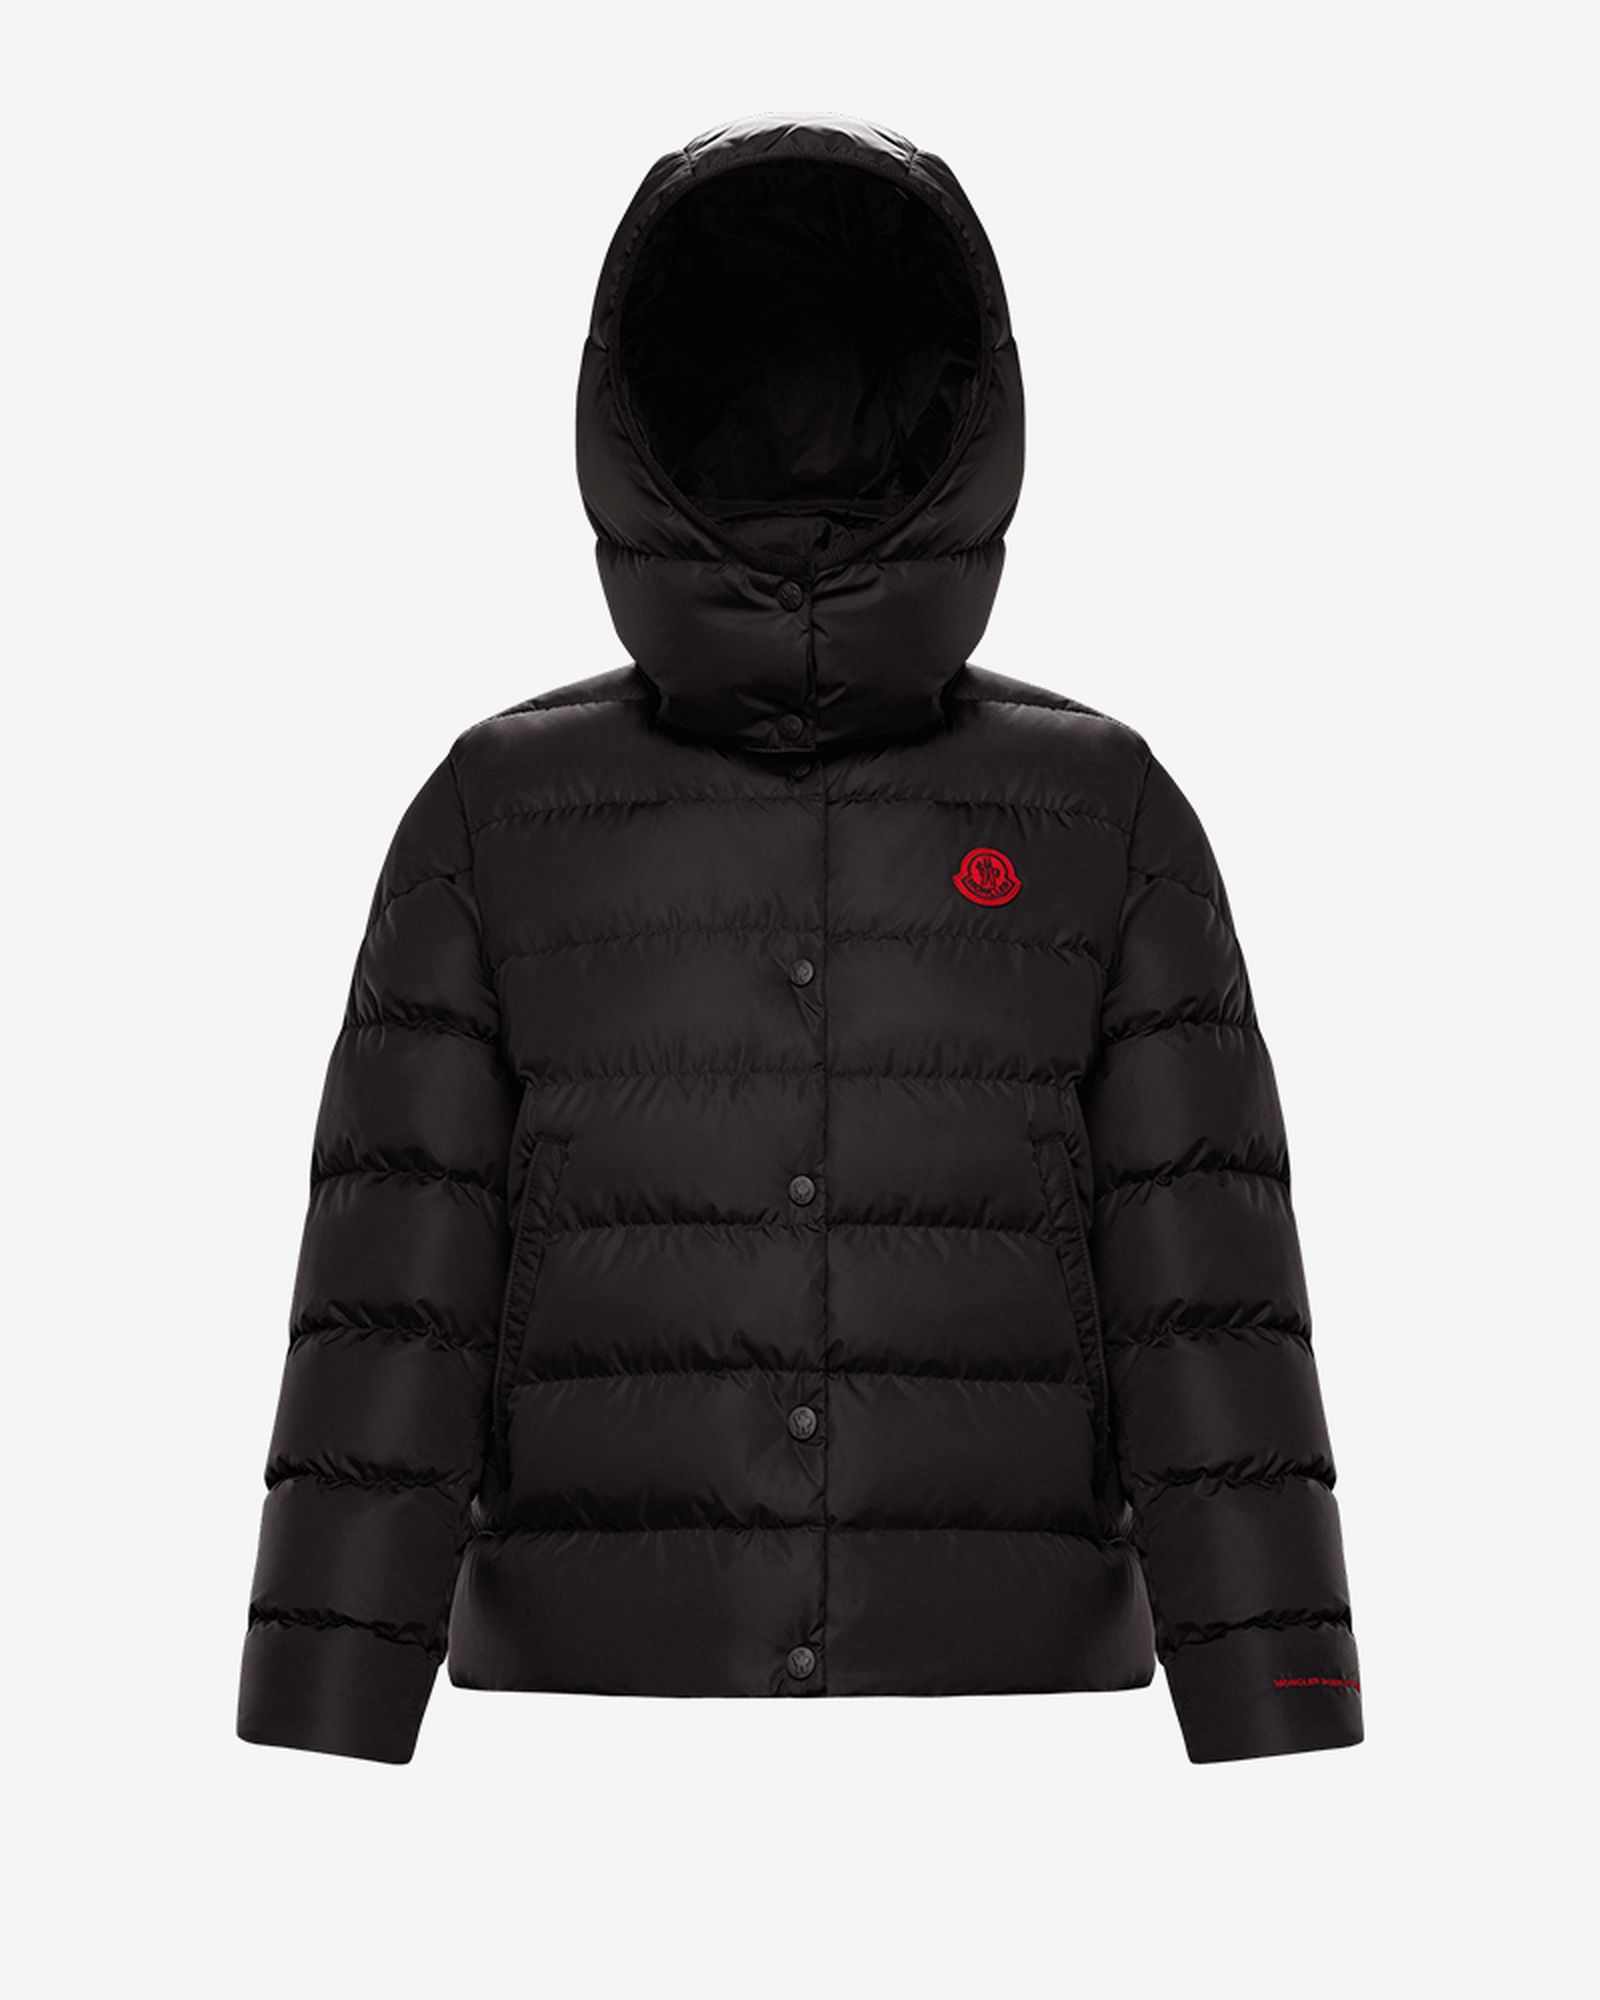 sustainable-moncler-jackets-08